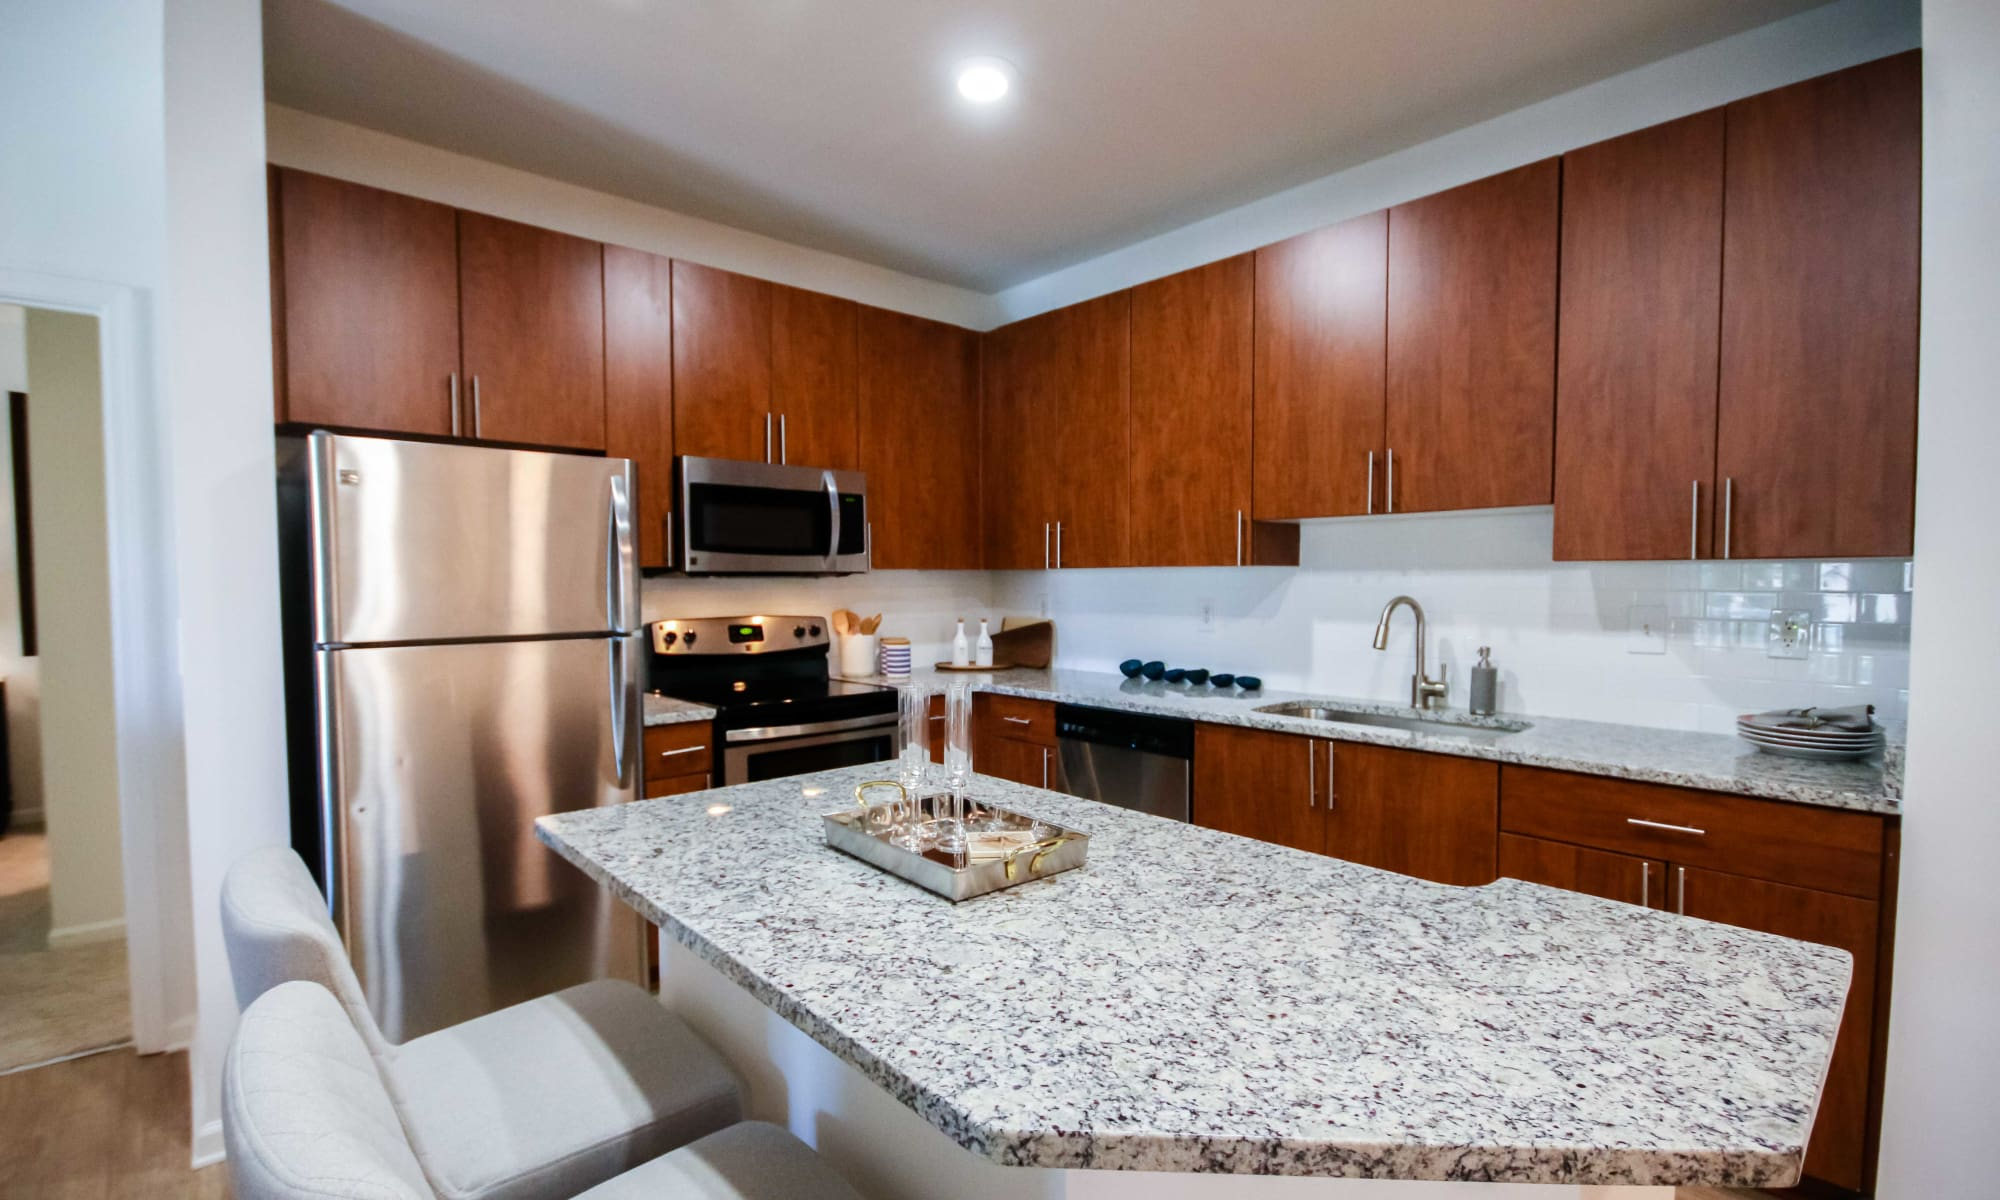 Duluth, GA Apartments for Rent near Norcross | The Maddox